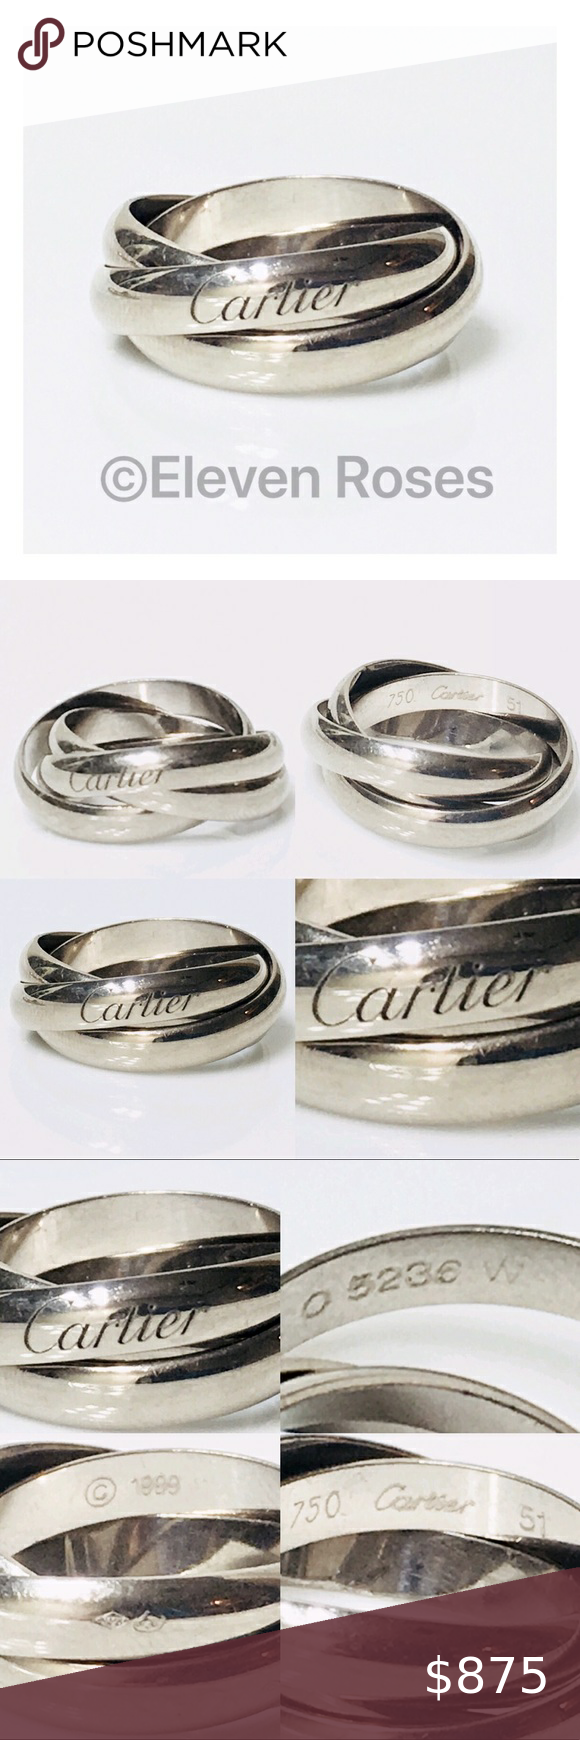 Pandora Jewelry 60% OFF!> Cartier 18k Gold Rolling Trinity Ring Cartier Three Band Ring Solid 750 18kt White Gold Each Band Measures Approx 3.5mm W Euro Size 51 / US Size 5 3/4 Original Cartier Packaging Included As Shown Very Good Condition Light Wear Listing Images Are Of The Actual Item Being Offered Cartier Size Chart Shown On Listing Images Cartier Jewelry Rings #Jewelry #PANDORA #style #Accessories #shopping #styles #outfit #pretty #girl #girls #beauty #beautiful #me #cute #styli...